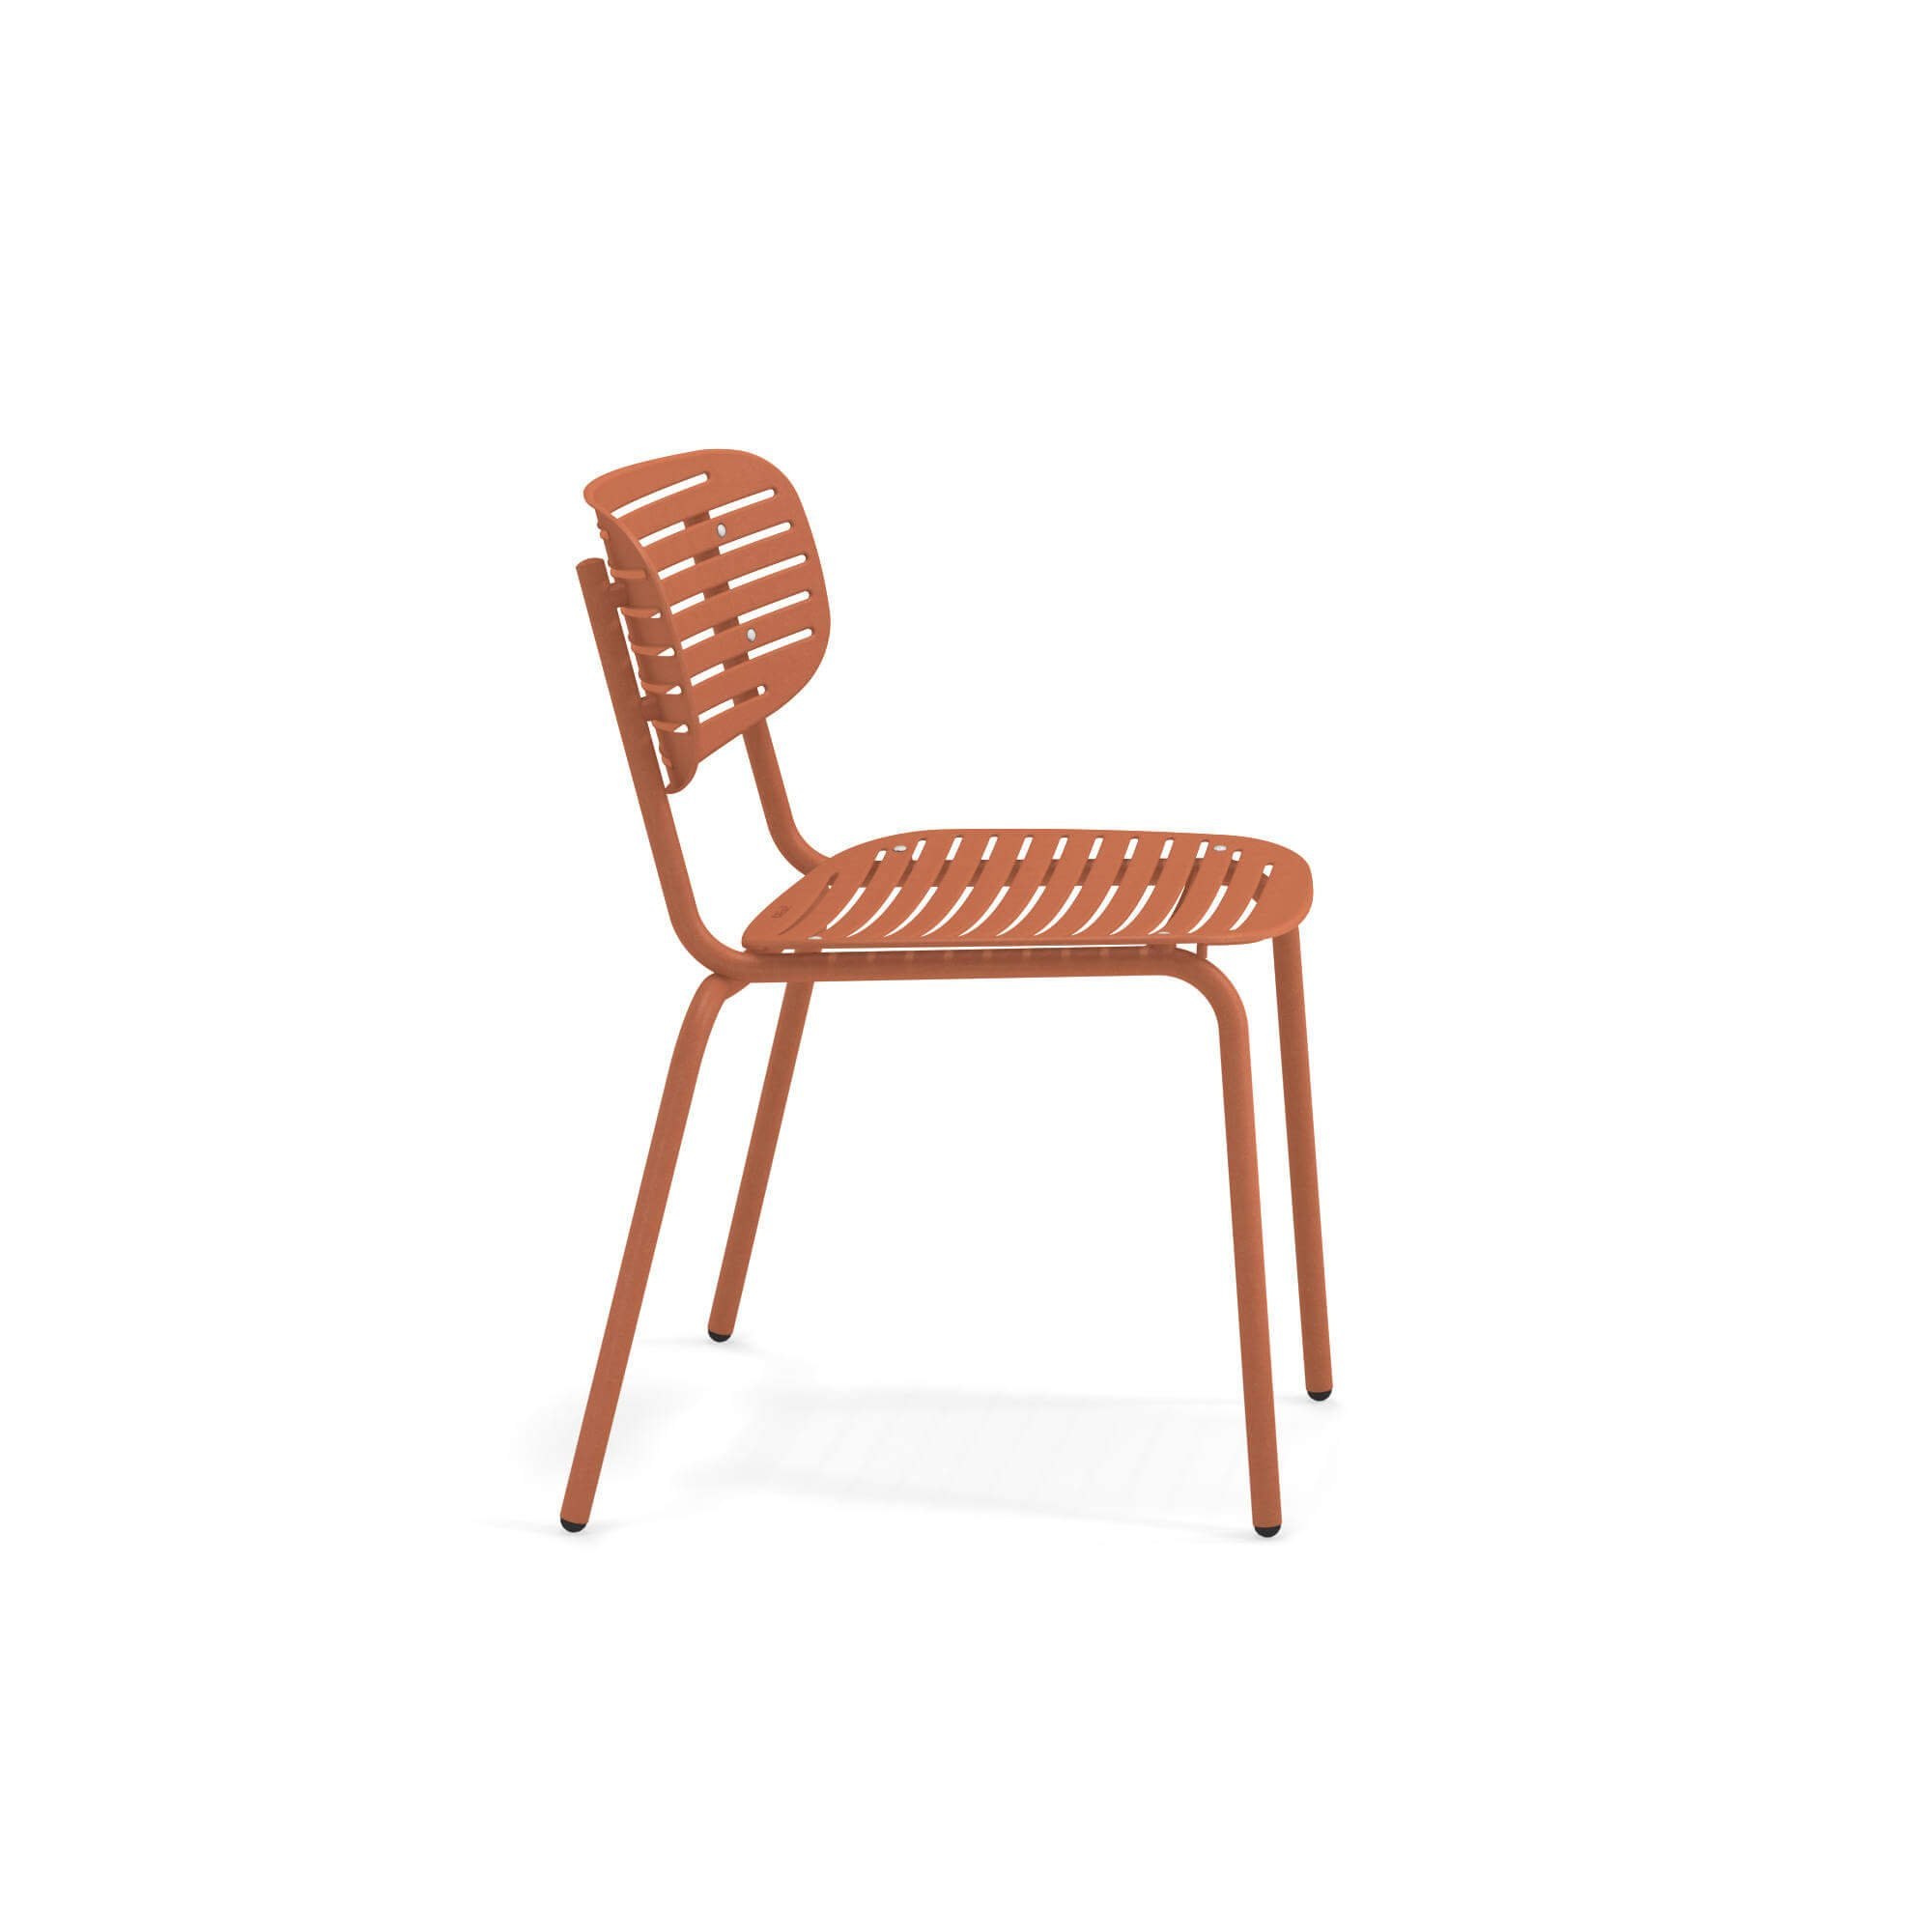 Mom Chair from Emu, designed by Florent Coirier